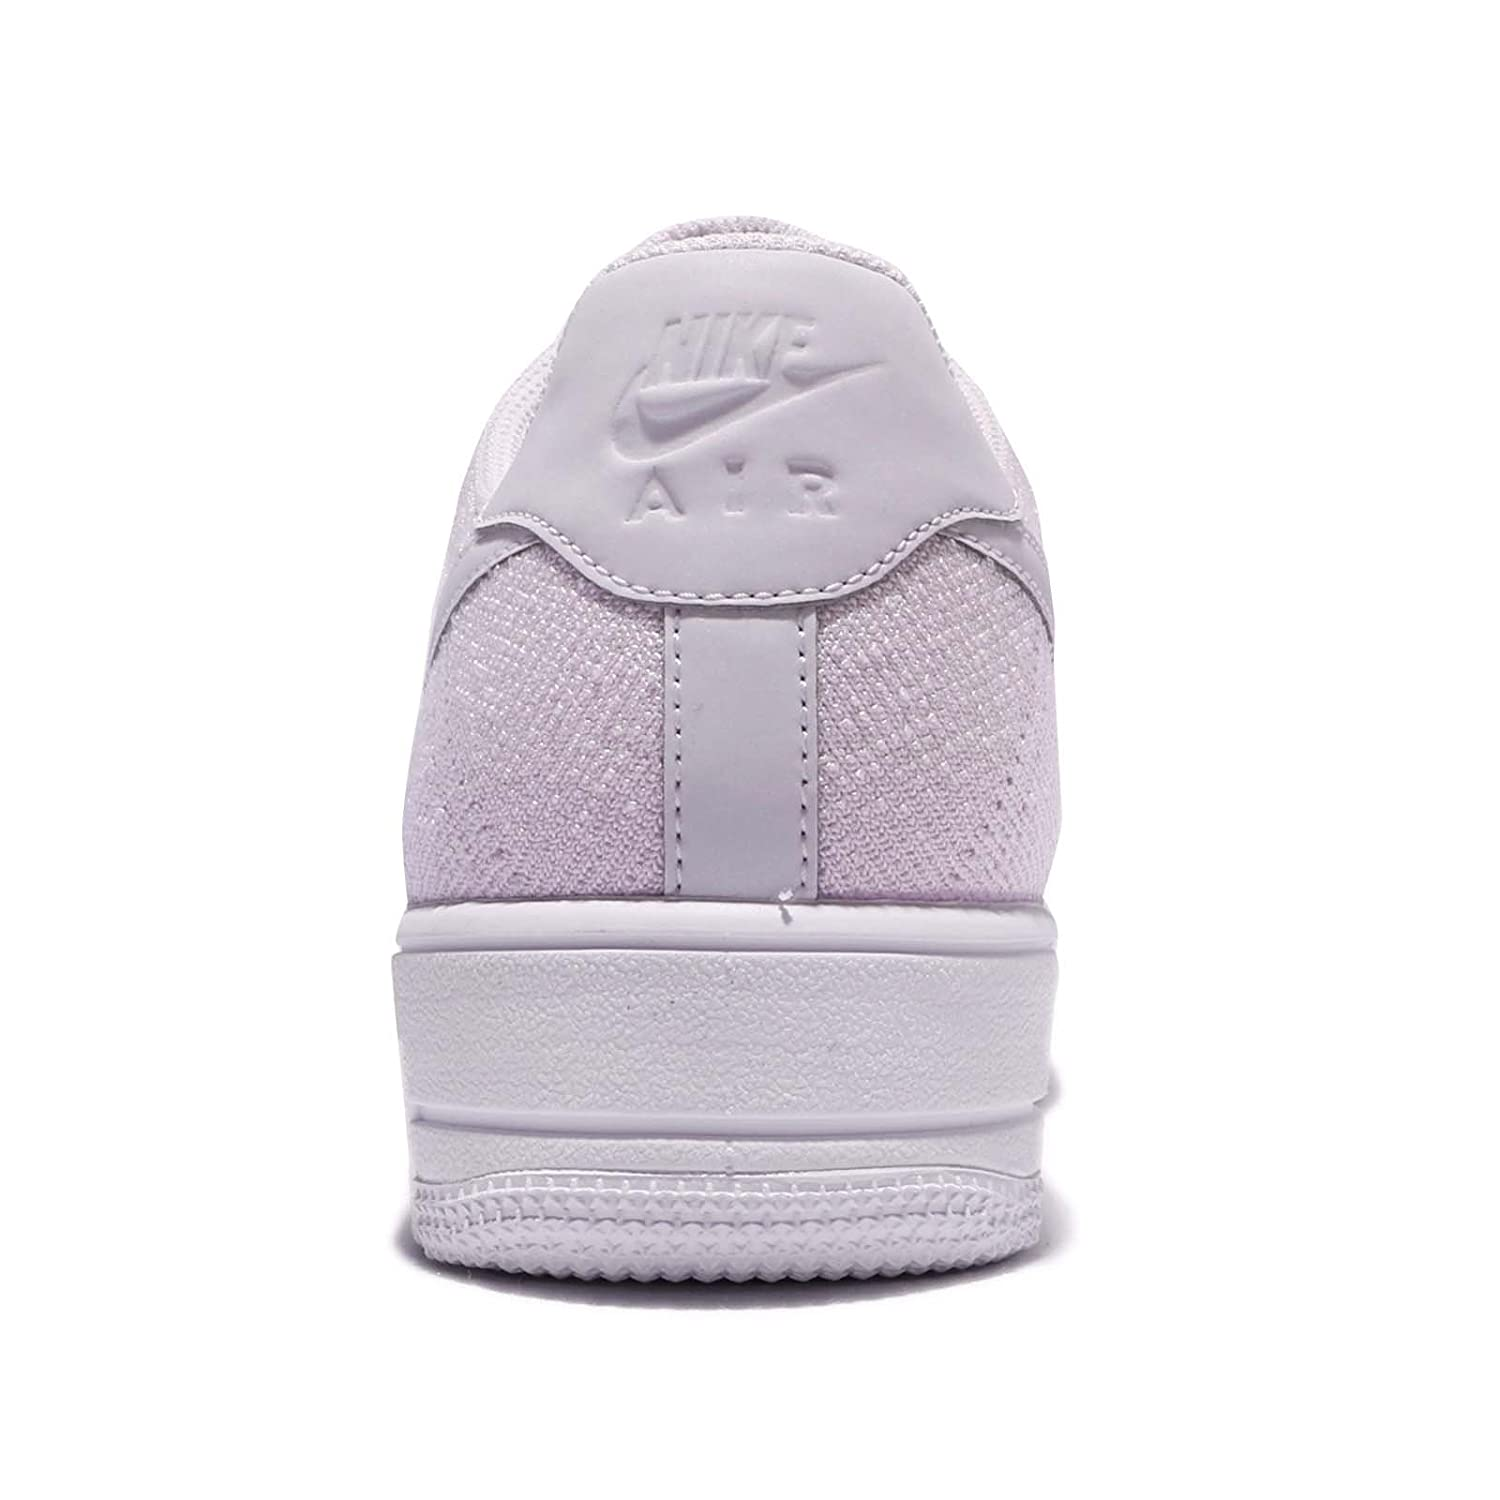 9363290eb049 Nike Men s Air Force 1 Ultra Flyknit Low Shoes Light Violet  Buy Online at  Low Prices in India - Amazon.in